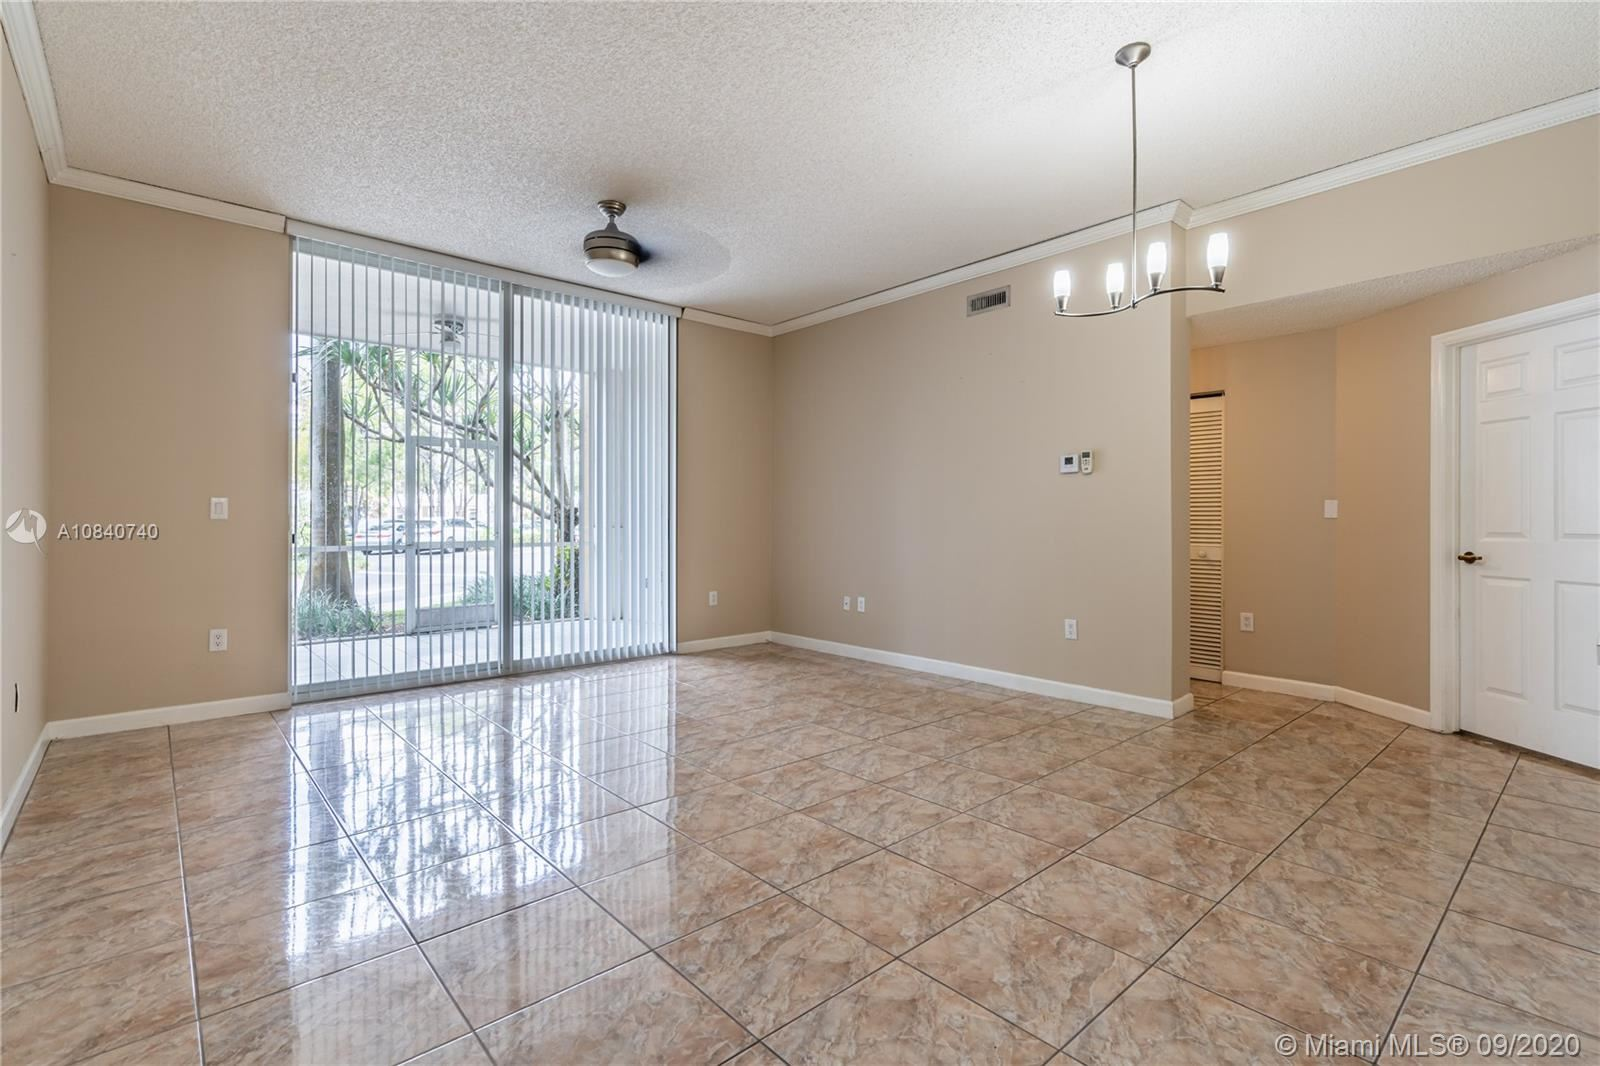 9805 NW 52nd St #117, Doral, FL 33178 - #: A10840740